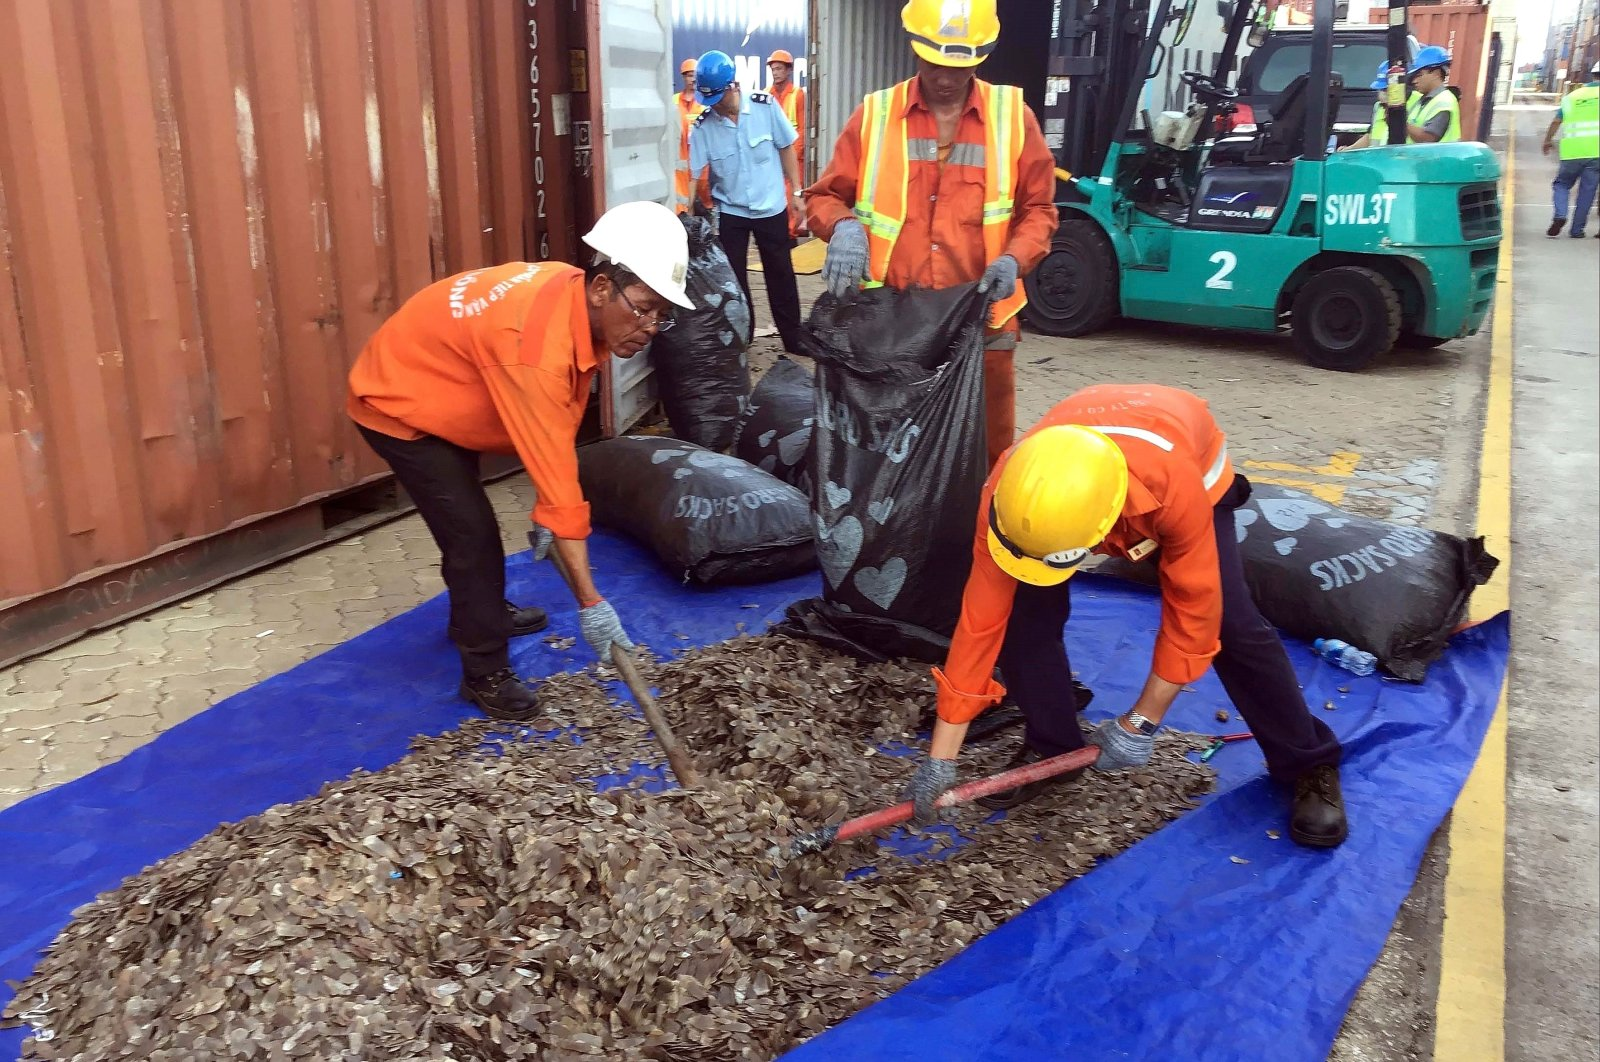 Officials sort seized pangolin scales at a port in southern Vietnam's Ba Ria Vung Tau province, May 23, 2019. (AFP Photo)